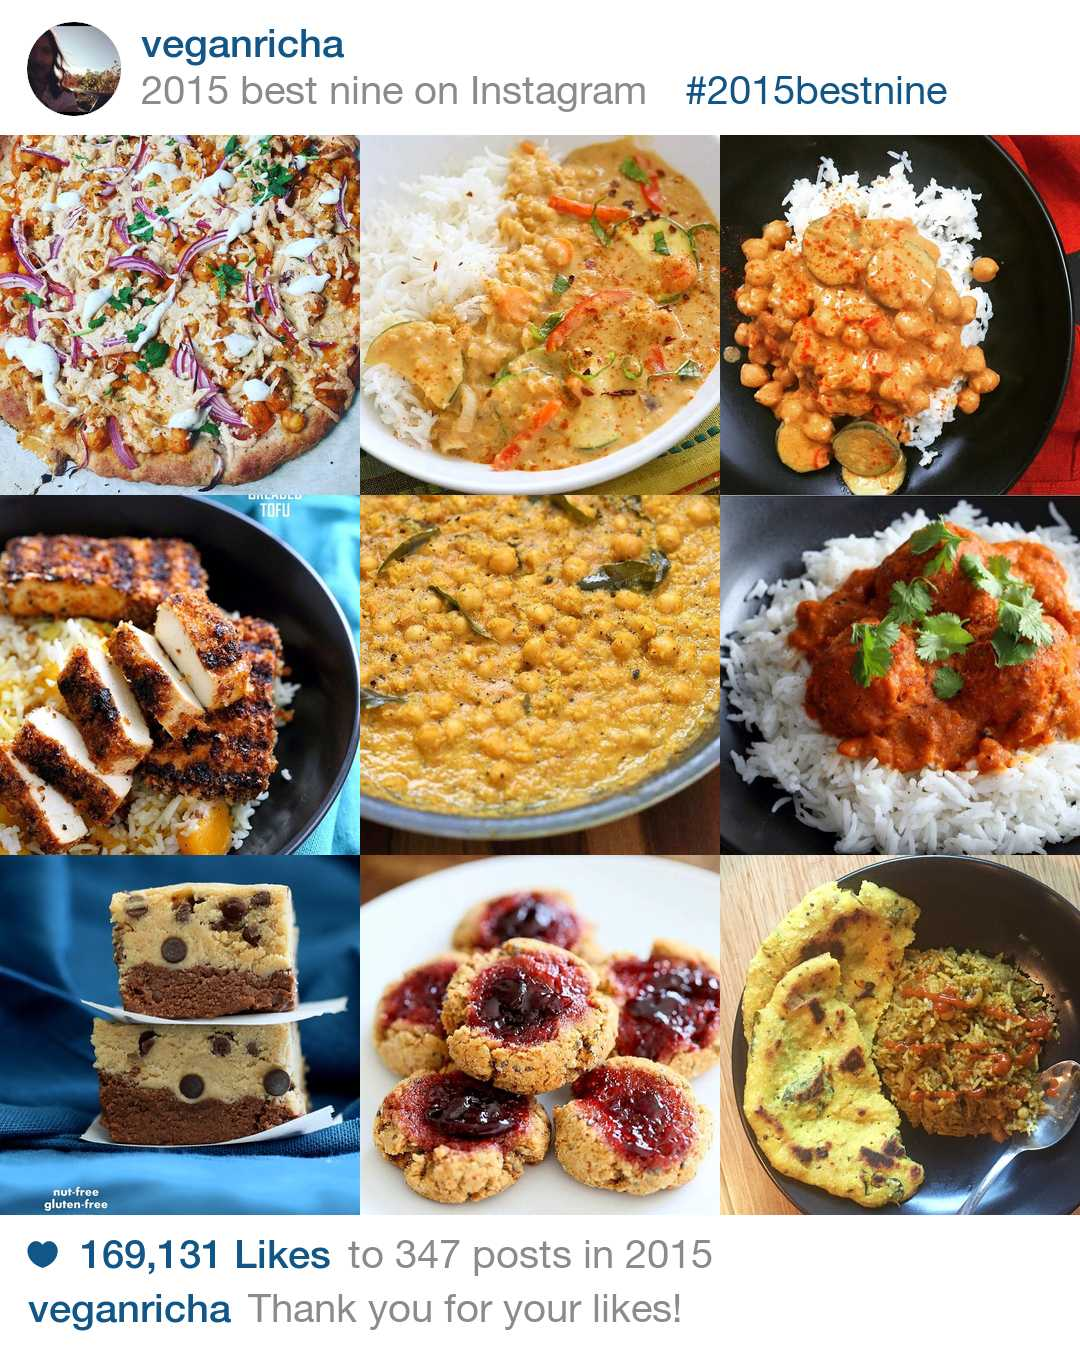 top 9 Posts on Instagram.com/VeganRicha